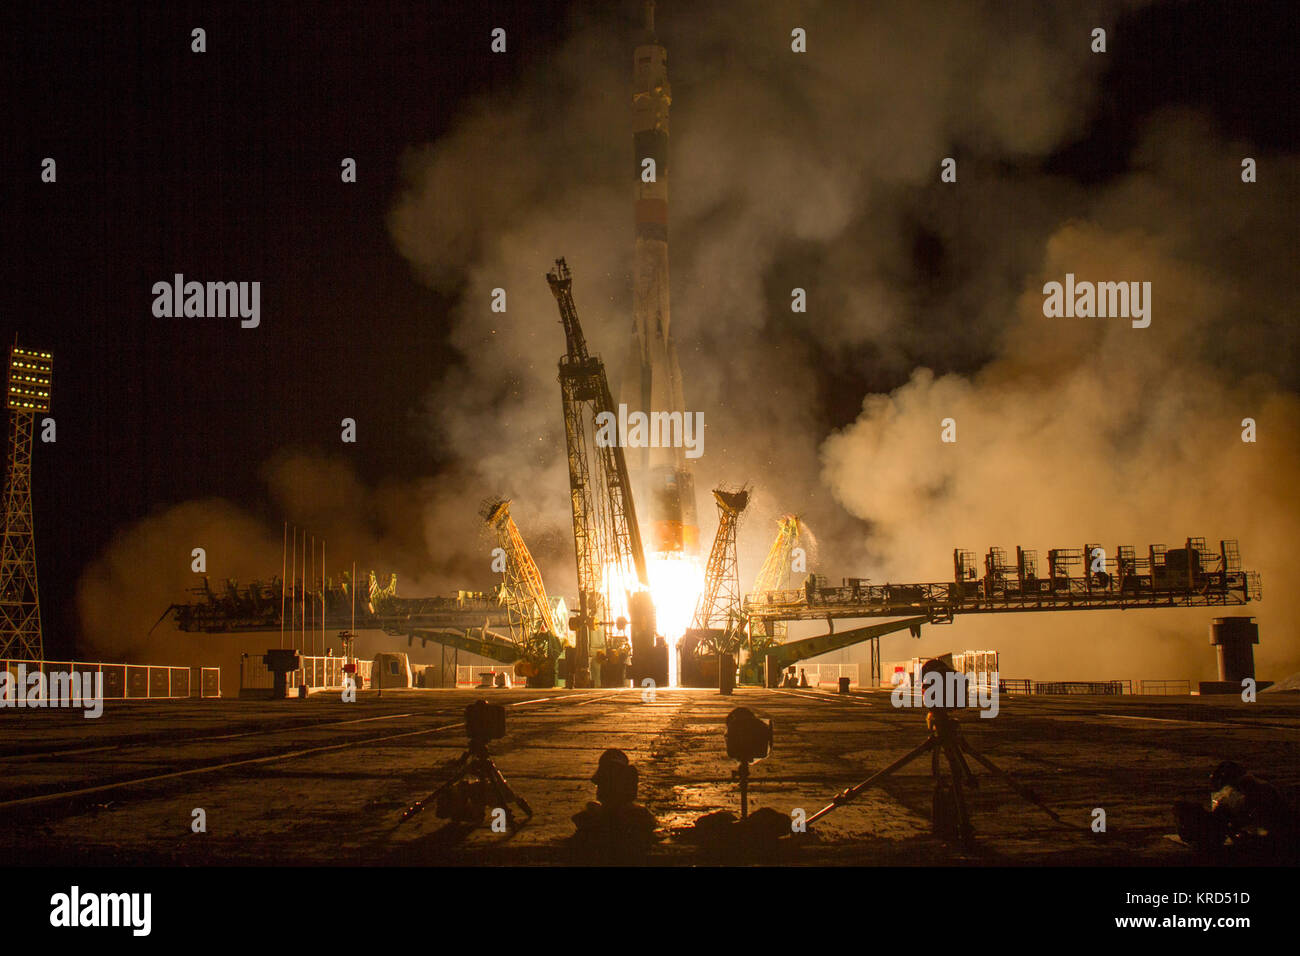 The Soyuz TMA-10M rocket launches from the Baikonur Cosmodrome in Kazakhstan on Thursday, Sept. 26, 2013 carrying - Stock Image